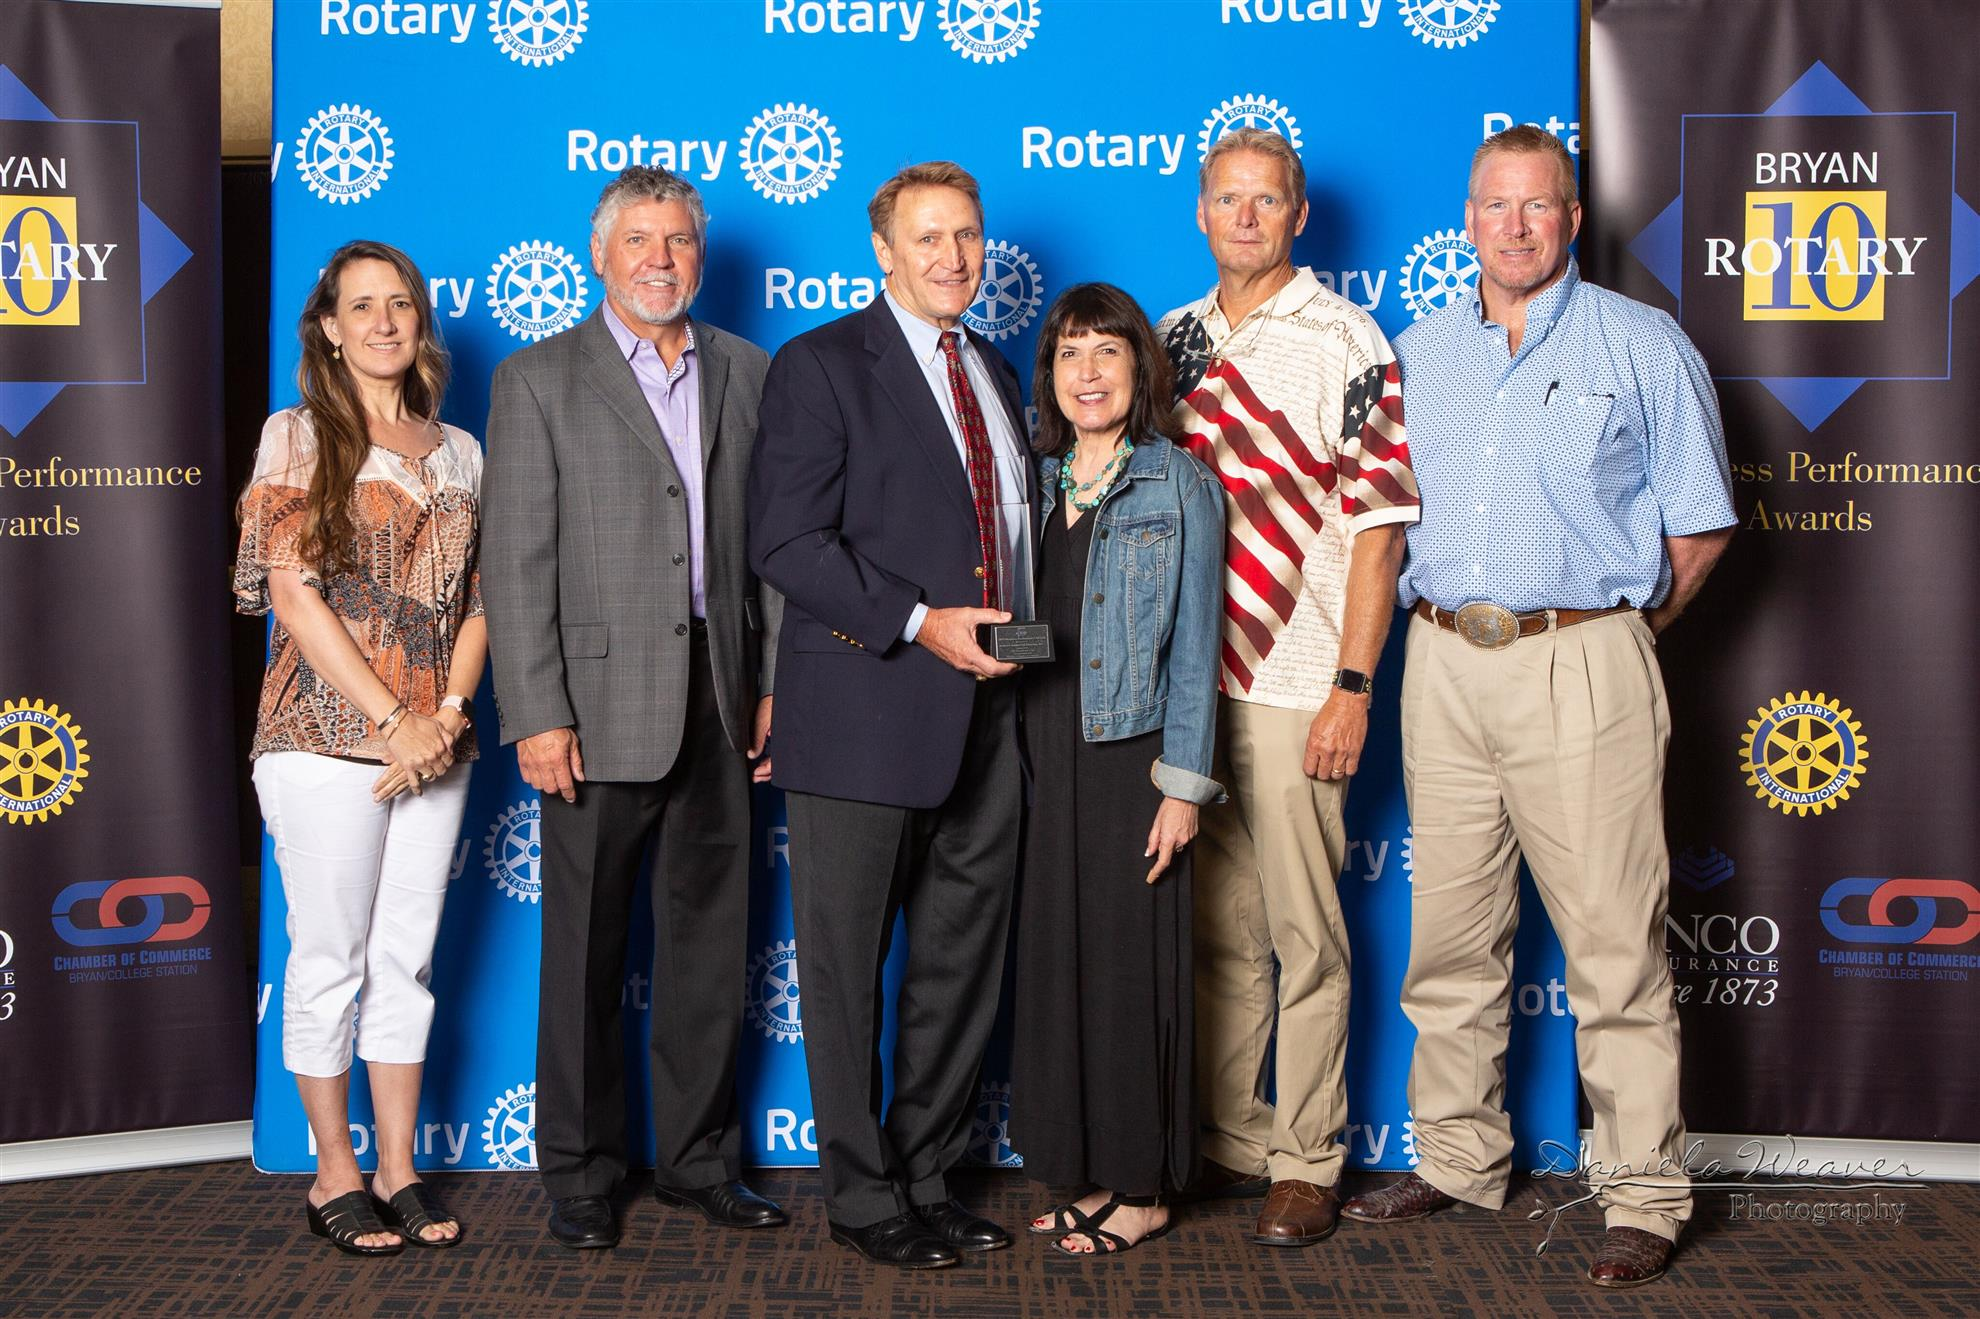 Home Page The Rotary Club Of Bryan Texas Inc